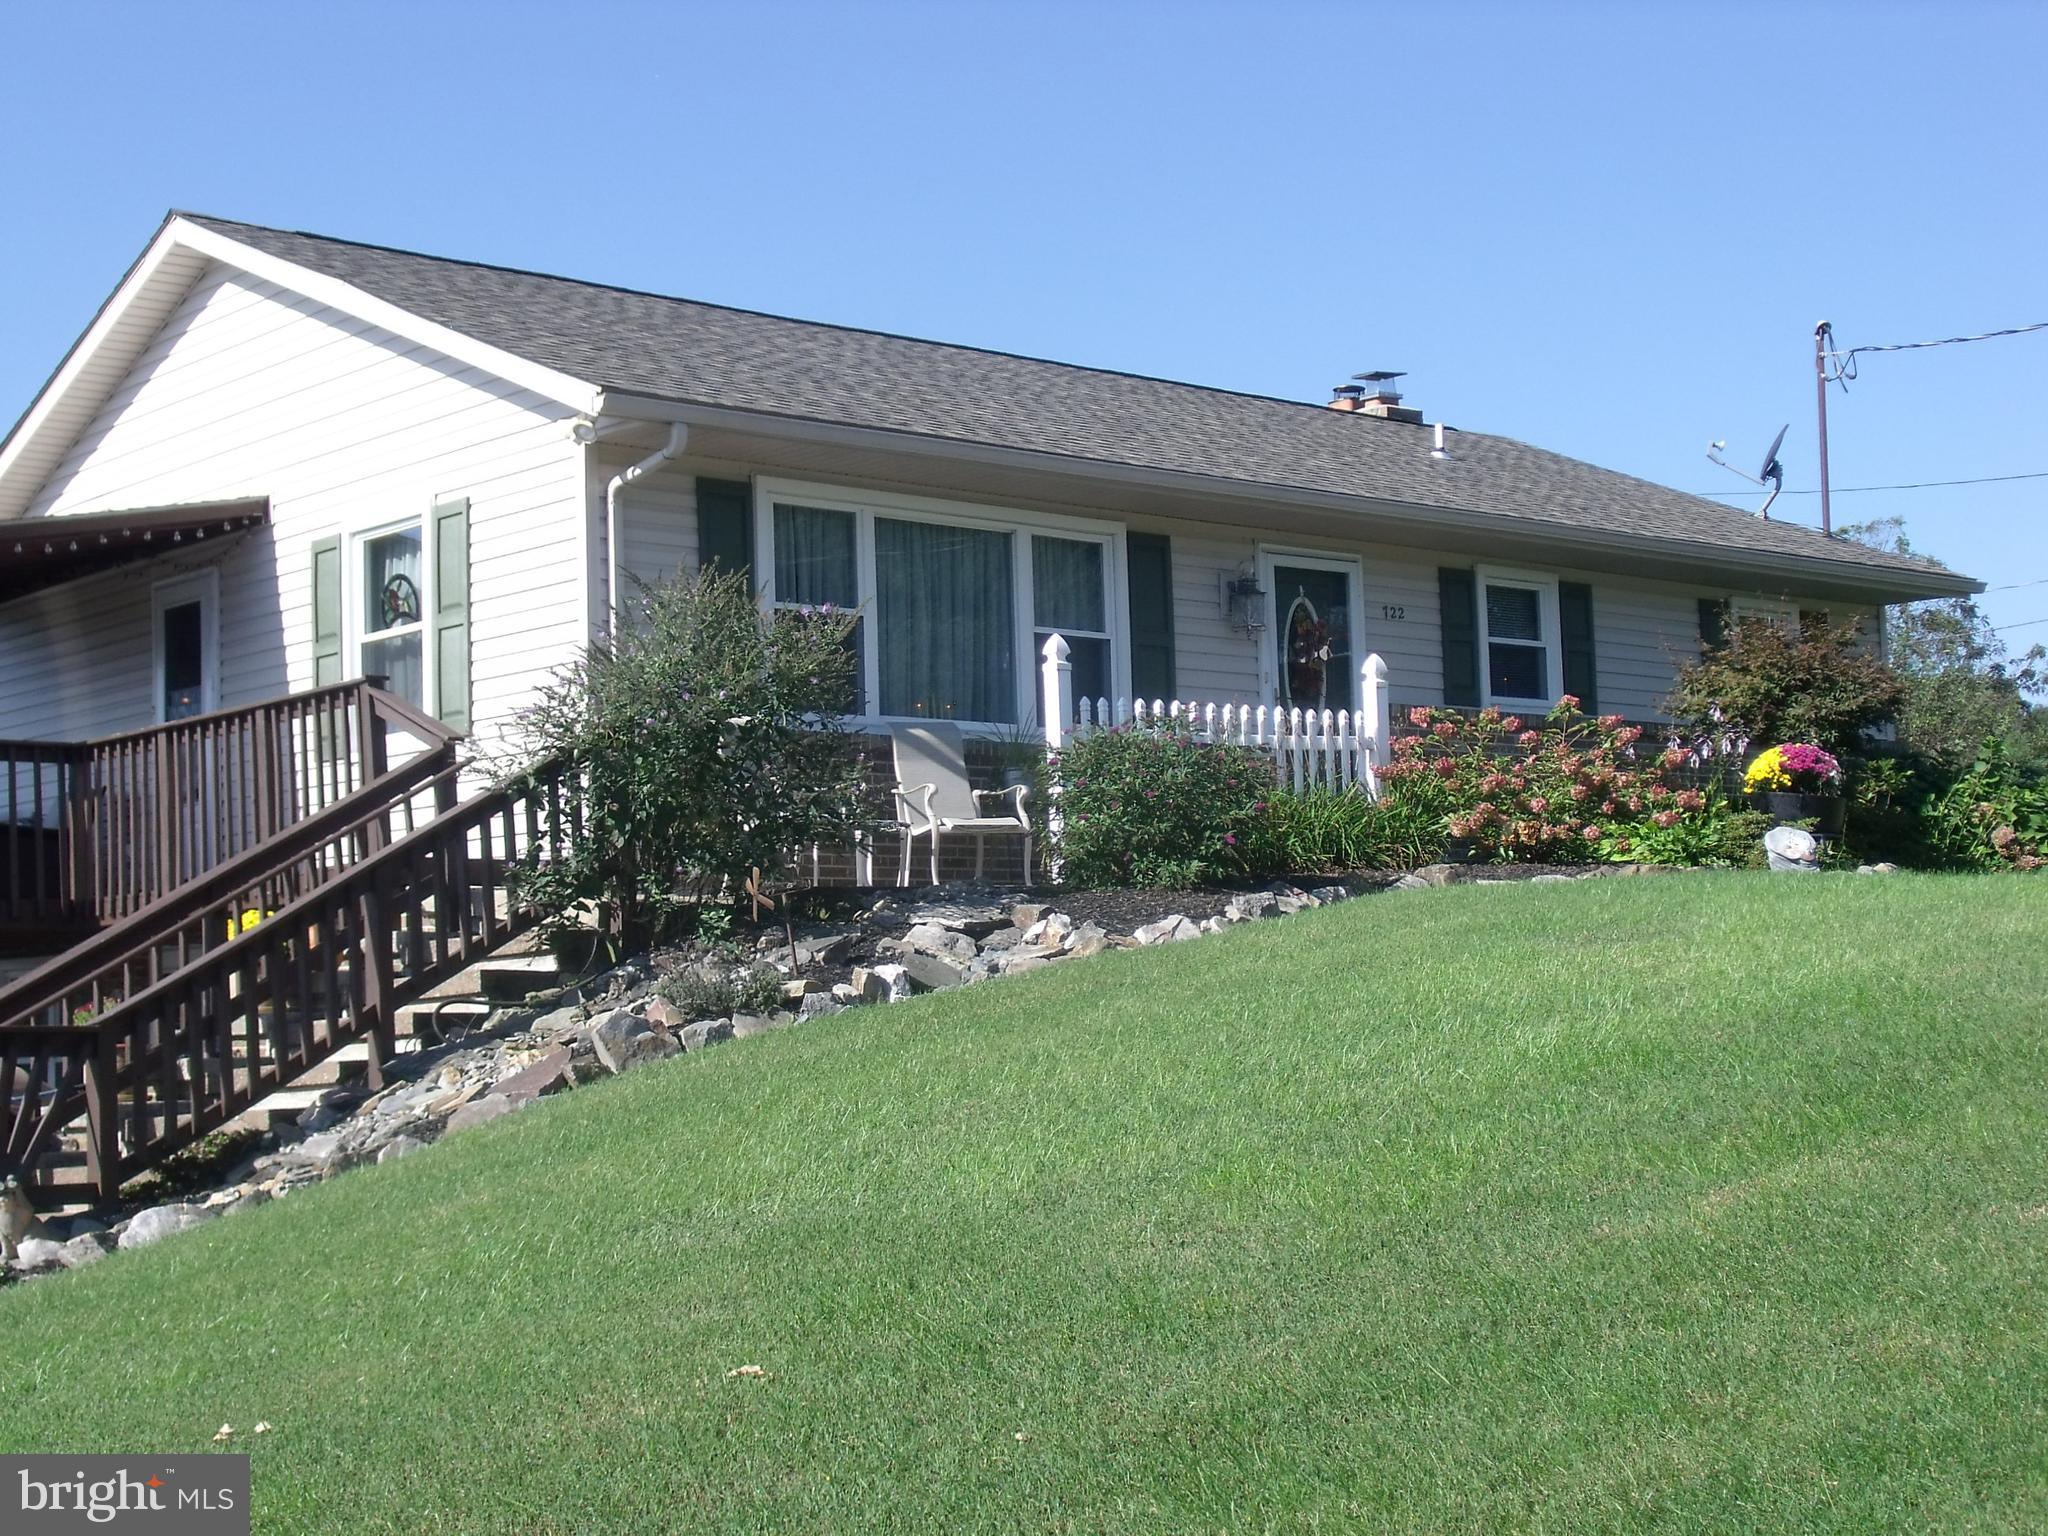 722 PICTURESQUE DRIVE, WRIGHTSVILLE, PA 17368